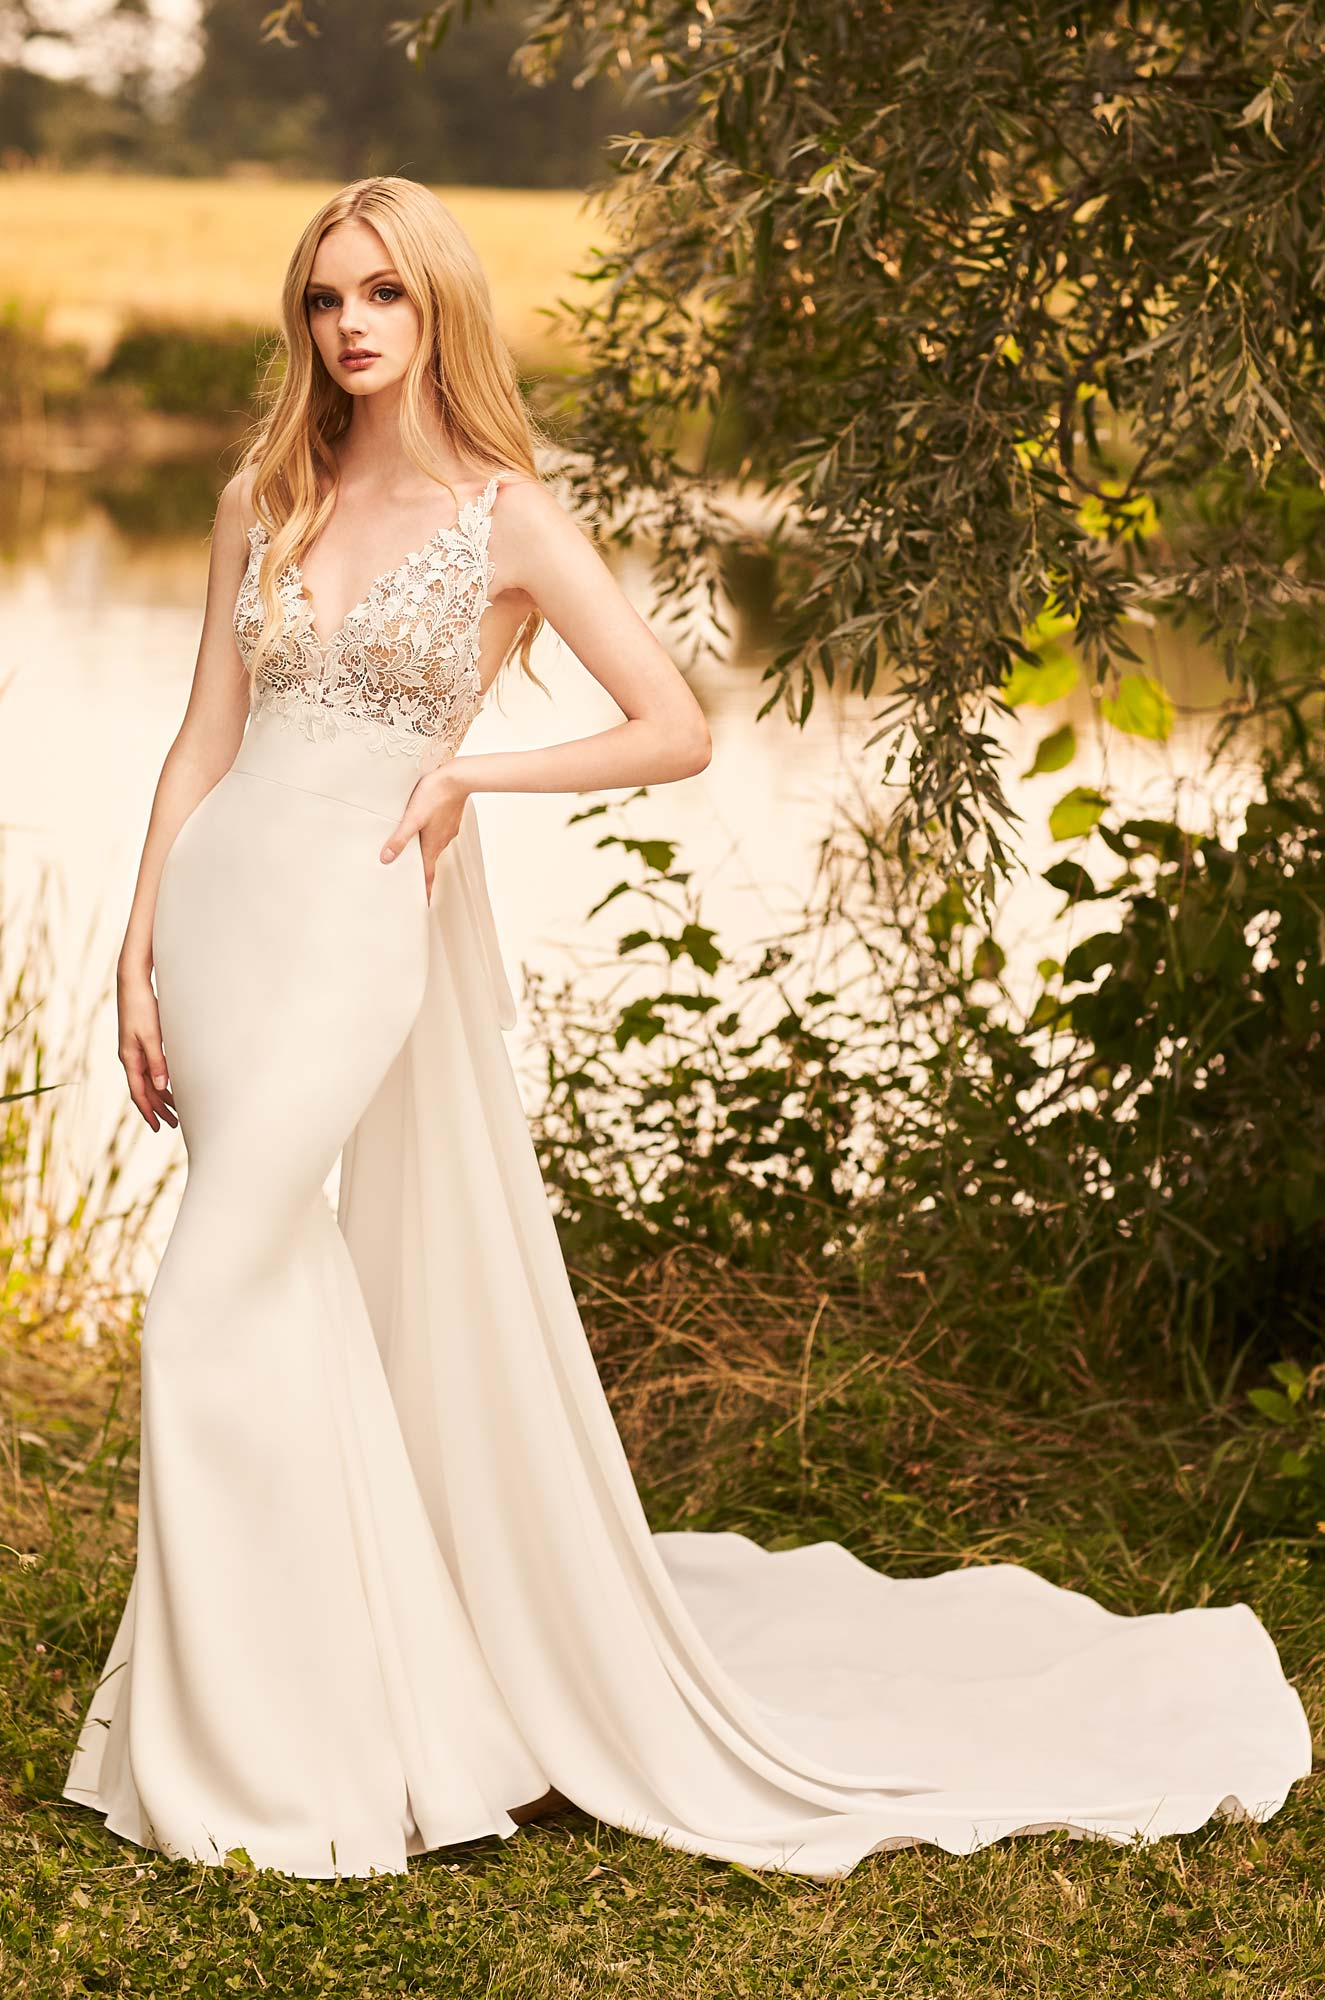 Versatile Detachable Train Wedding Dress - Style #2292 | Mikaella Bridal